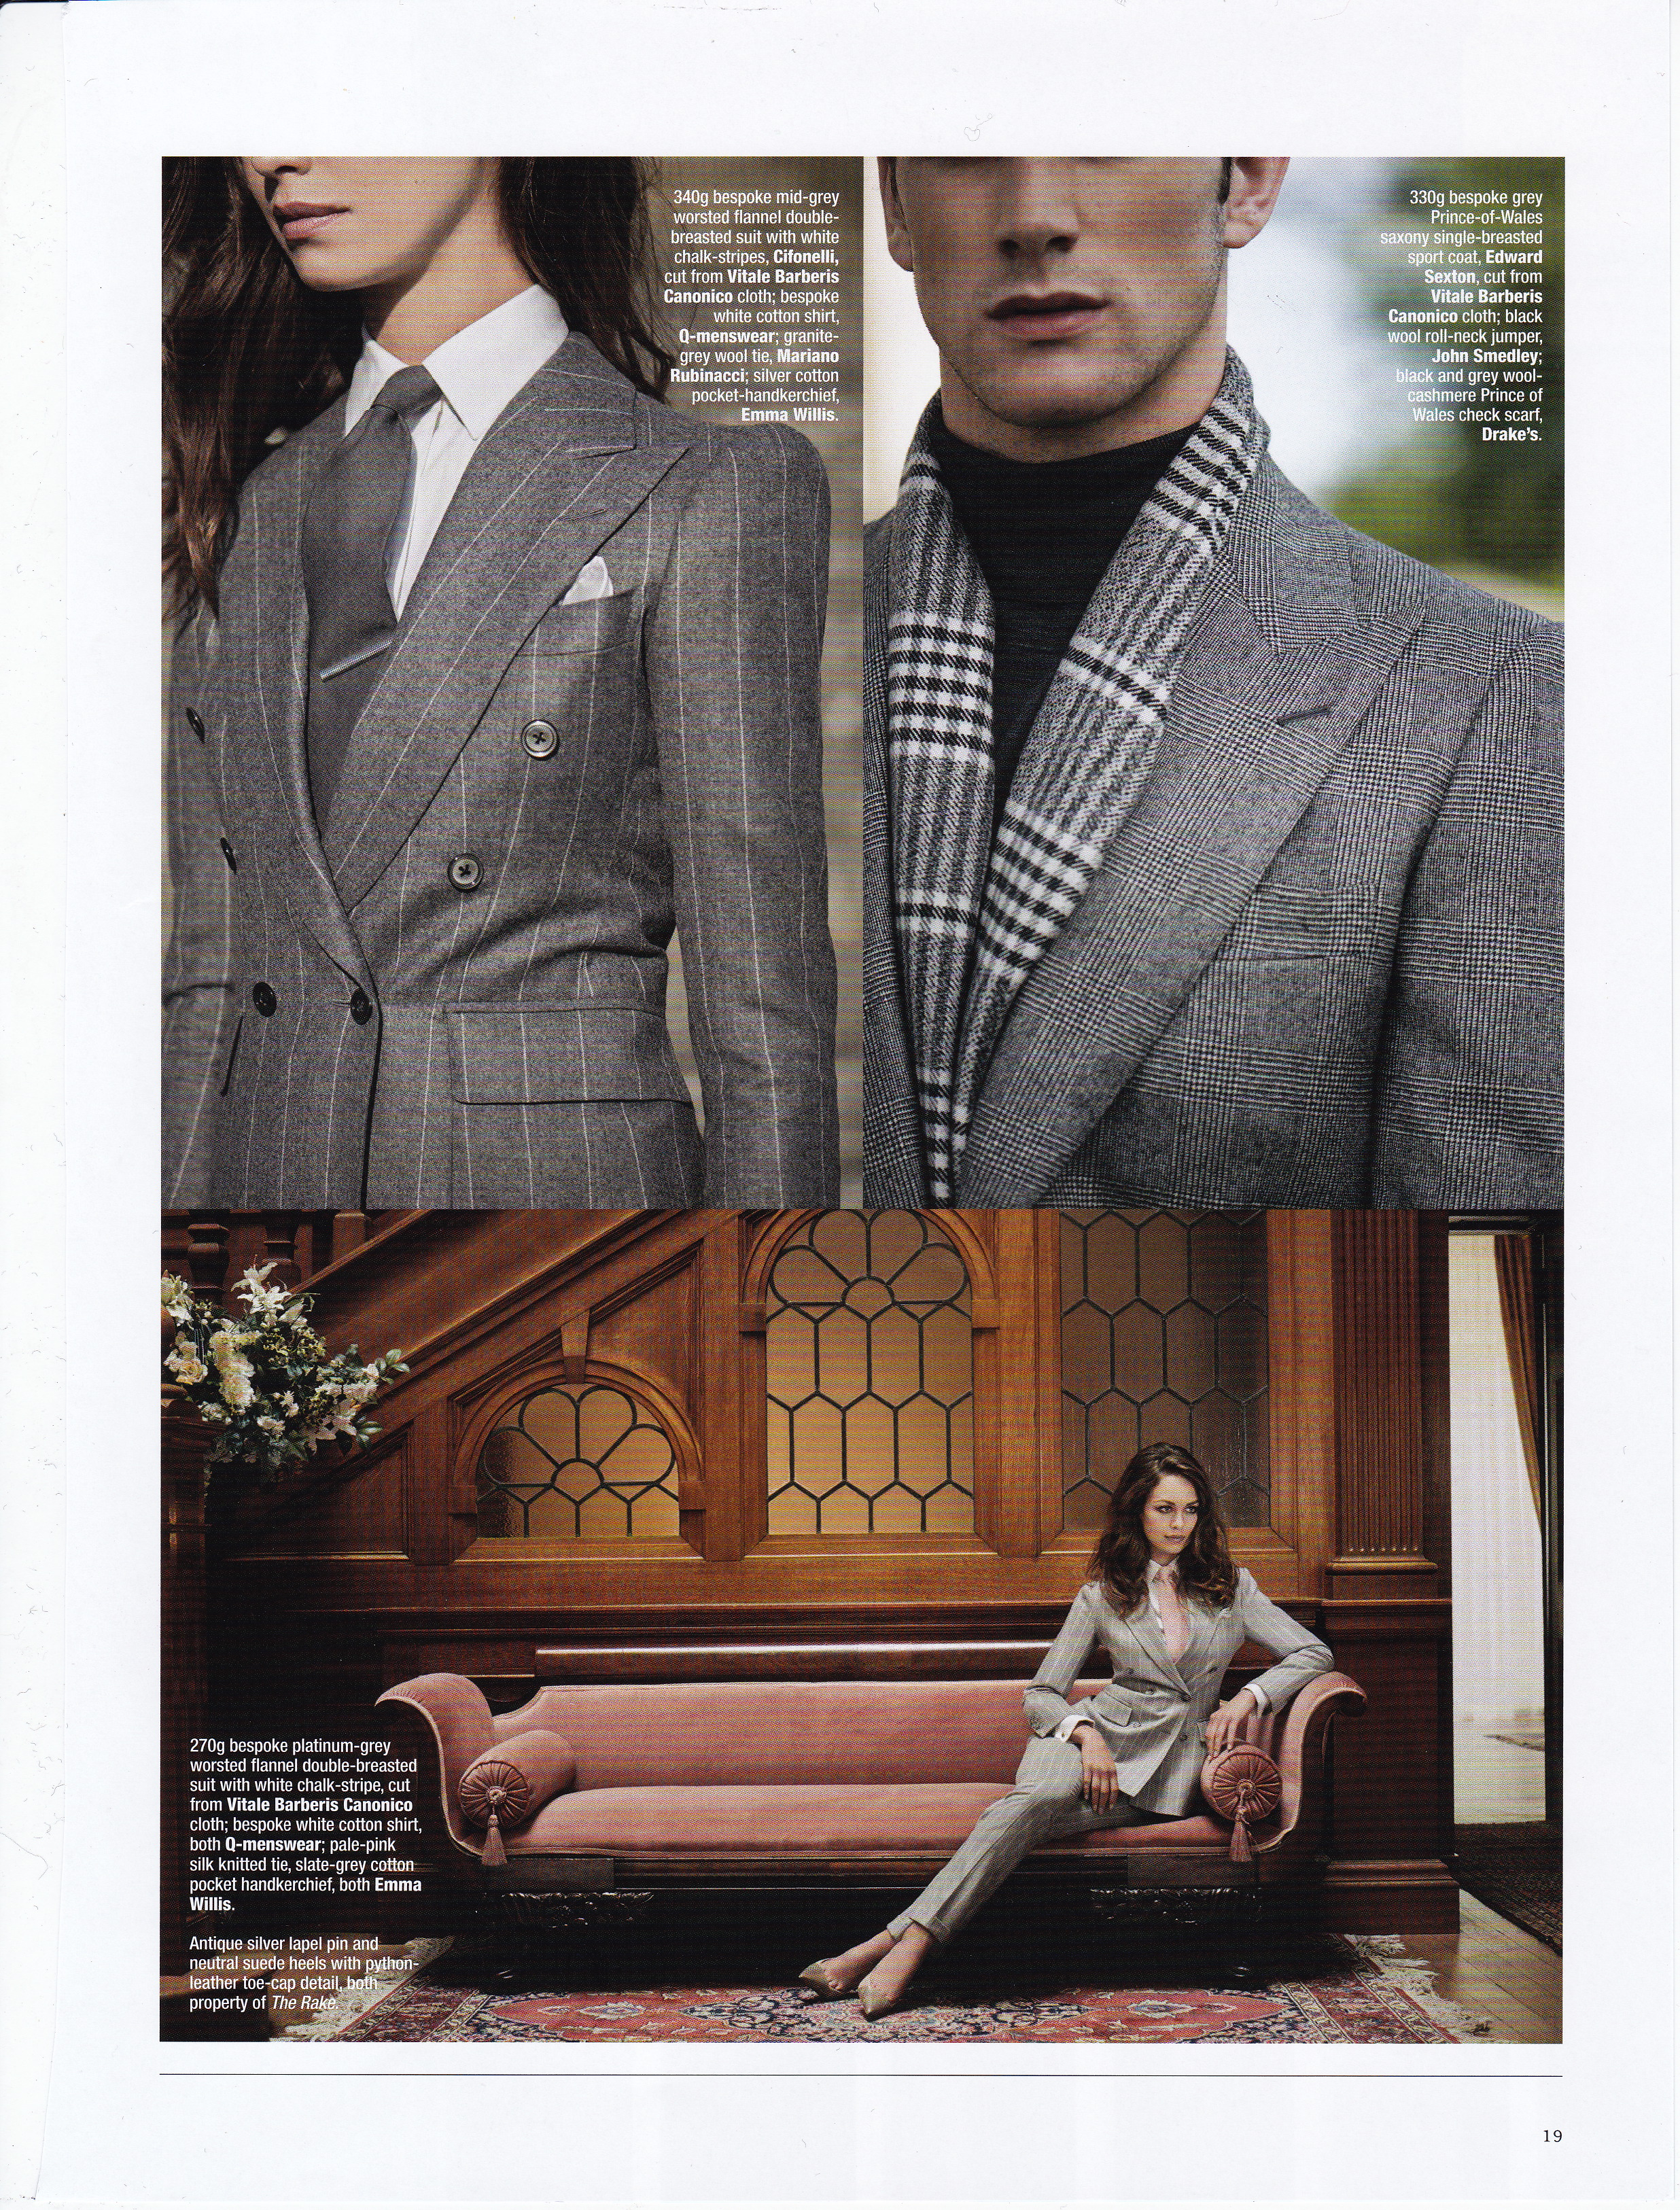 The Rake Magazine Issue 39. Top Right: Edward Sexton Bespoke grey Prince-Of-Wales saxony single breasted sport coat